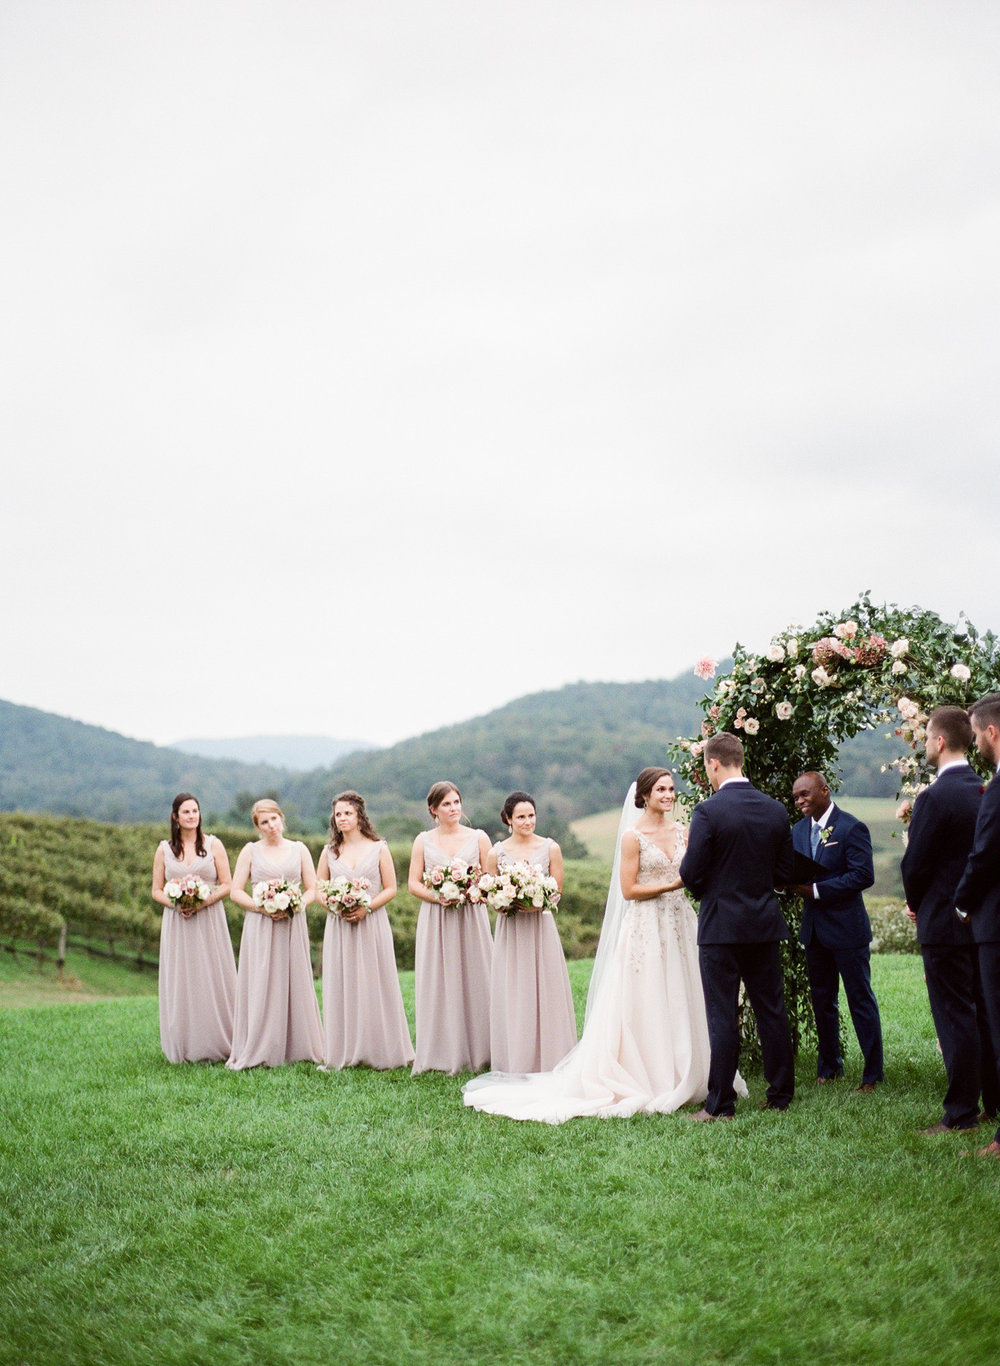 Pippin-Hill-Farm-and-Vinyards-Wedding-Film-Photography-31.jpg